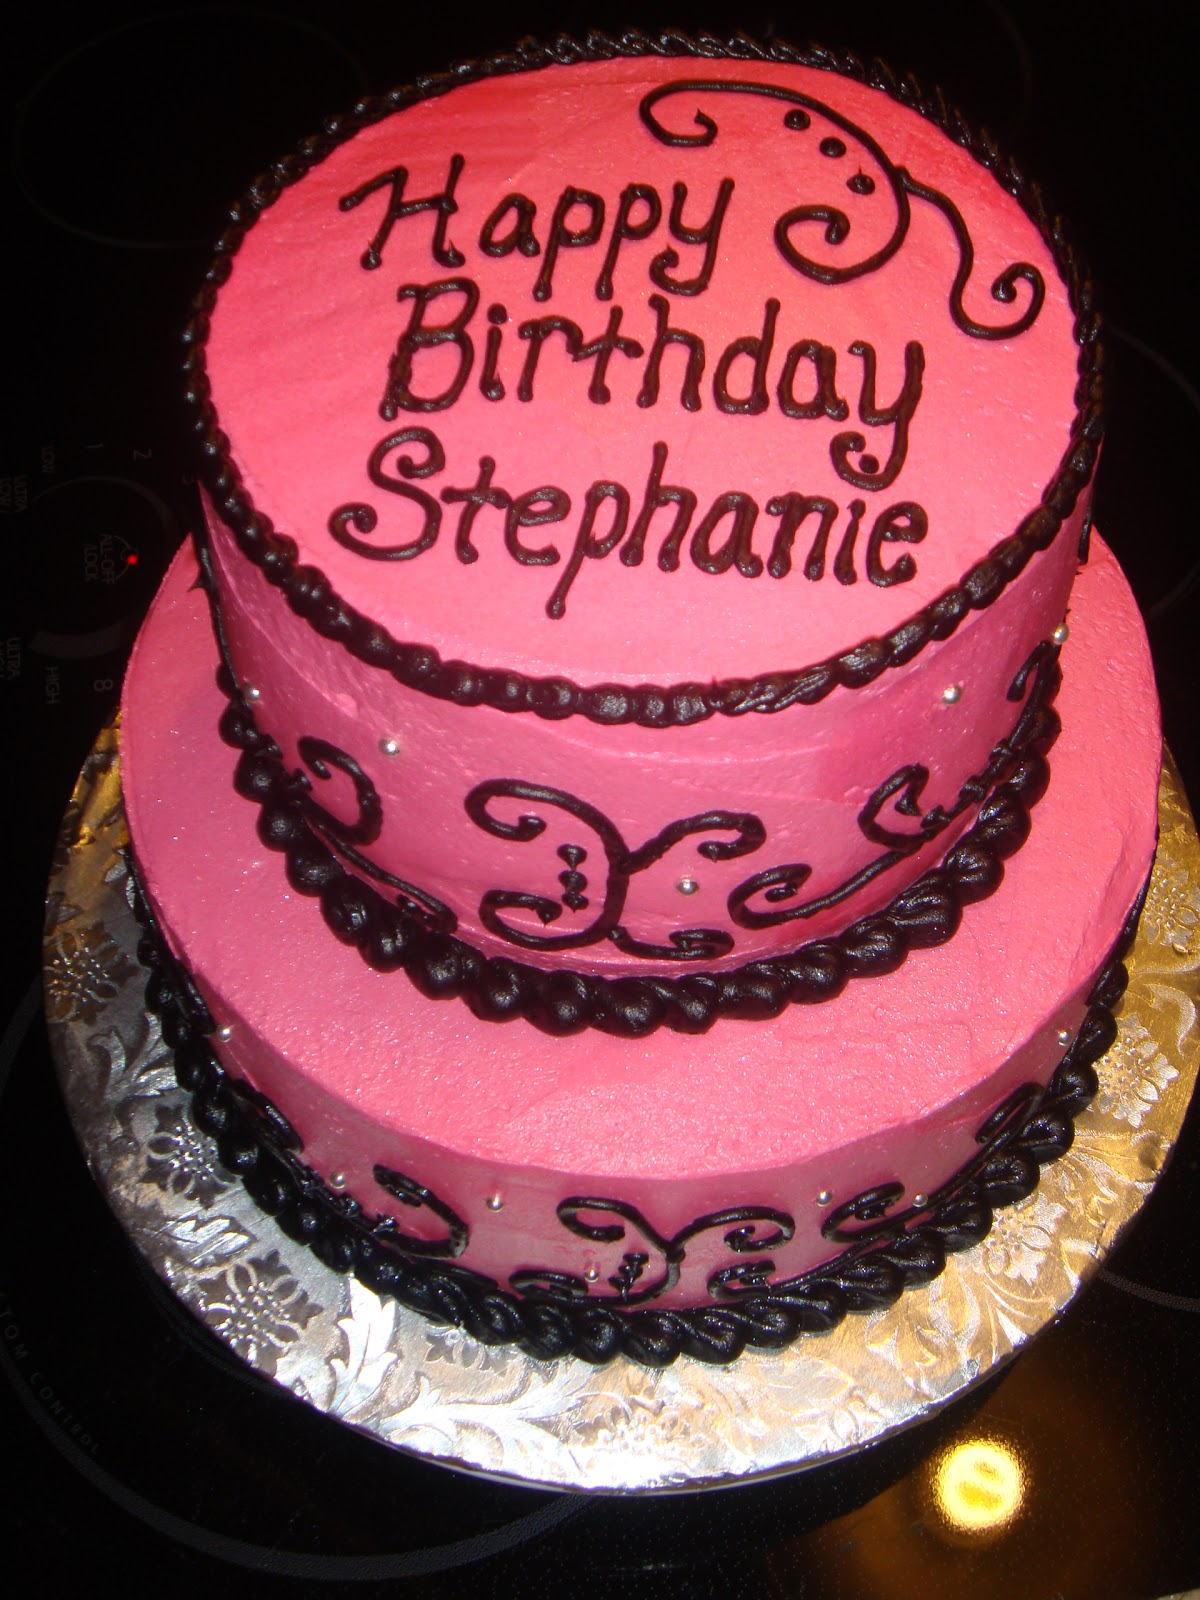 Vickis Sweet Treats Stephanies Pink Black Birthday Cake